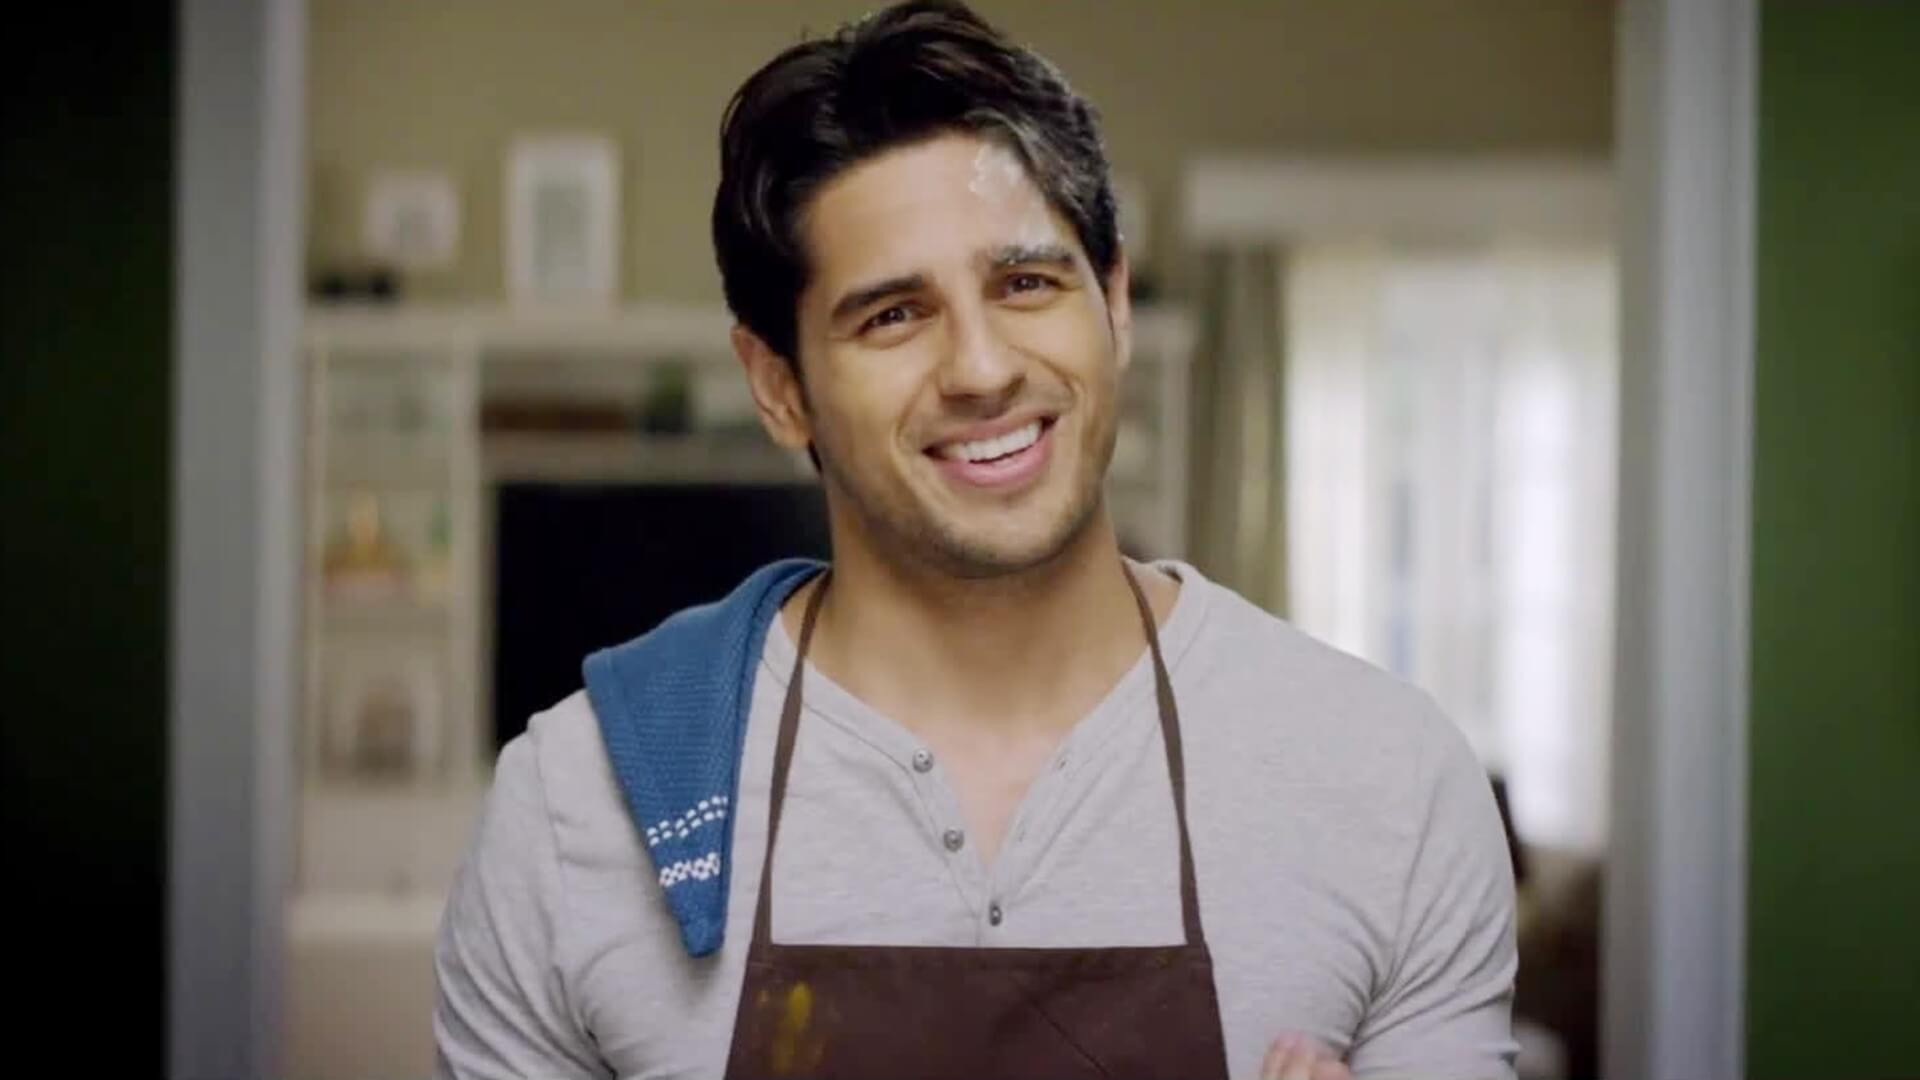 Sidharth Malhotra Movies, Height, Age, Photos, Birth Date, Biography, Girlfriend, Family, Hairstyle, Education, Details, Net Worth, Awards, Wiki, Instagram, Facebook, Imdb, Twitter (58)